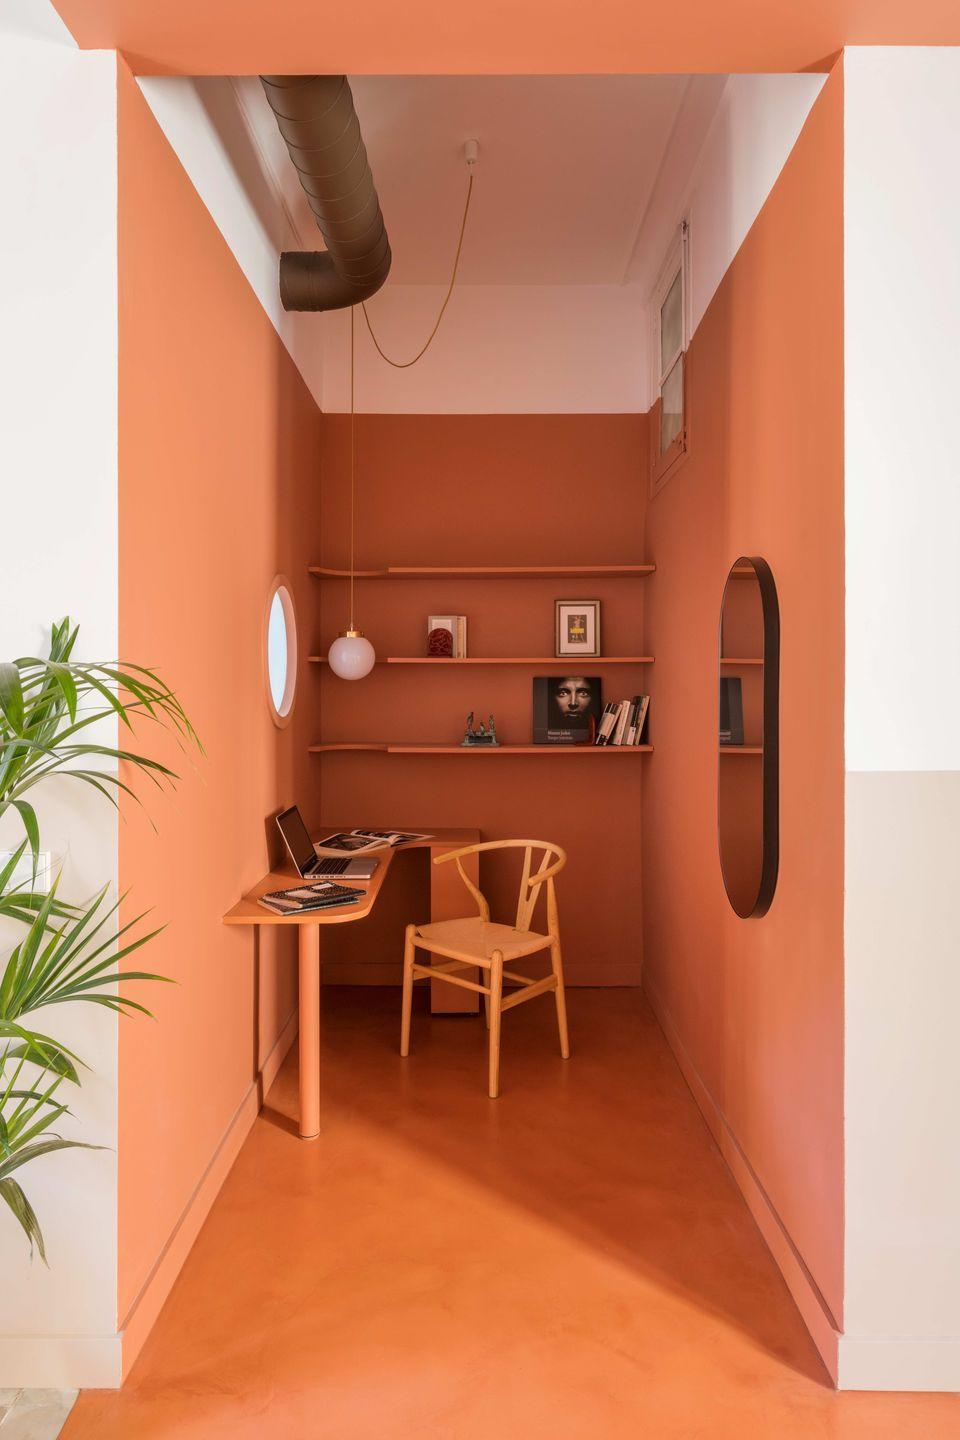 """<p>Barcelona-based architecture firm Casa has turned a tight corner office into a sunny, positive (rather than pokey) space with a lick of orange paint. By matching the desk, chair and shelving in the same colour, the effect is one of disguise – a good tip for workspaces in open-plan homes. <a href=""""https://www.colomboserboli.com"""" rel=""""nofollow noopener"""" target=""""_blank"""" data-ylk=""""slk:colomboserboli.com"""" class=""""link rapid-noclick-resp"""">colomboserboli.com</a></p>"""